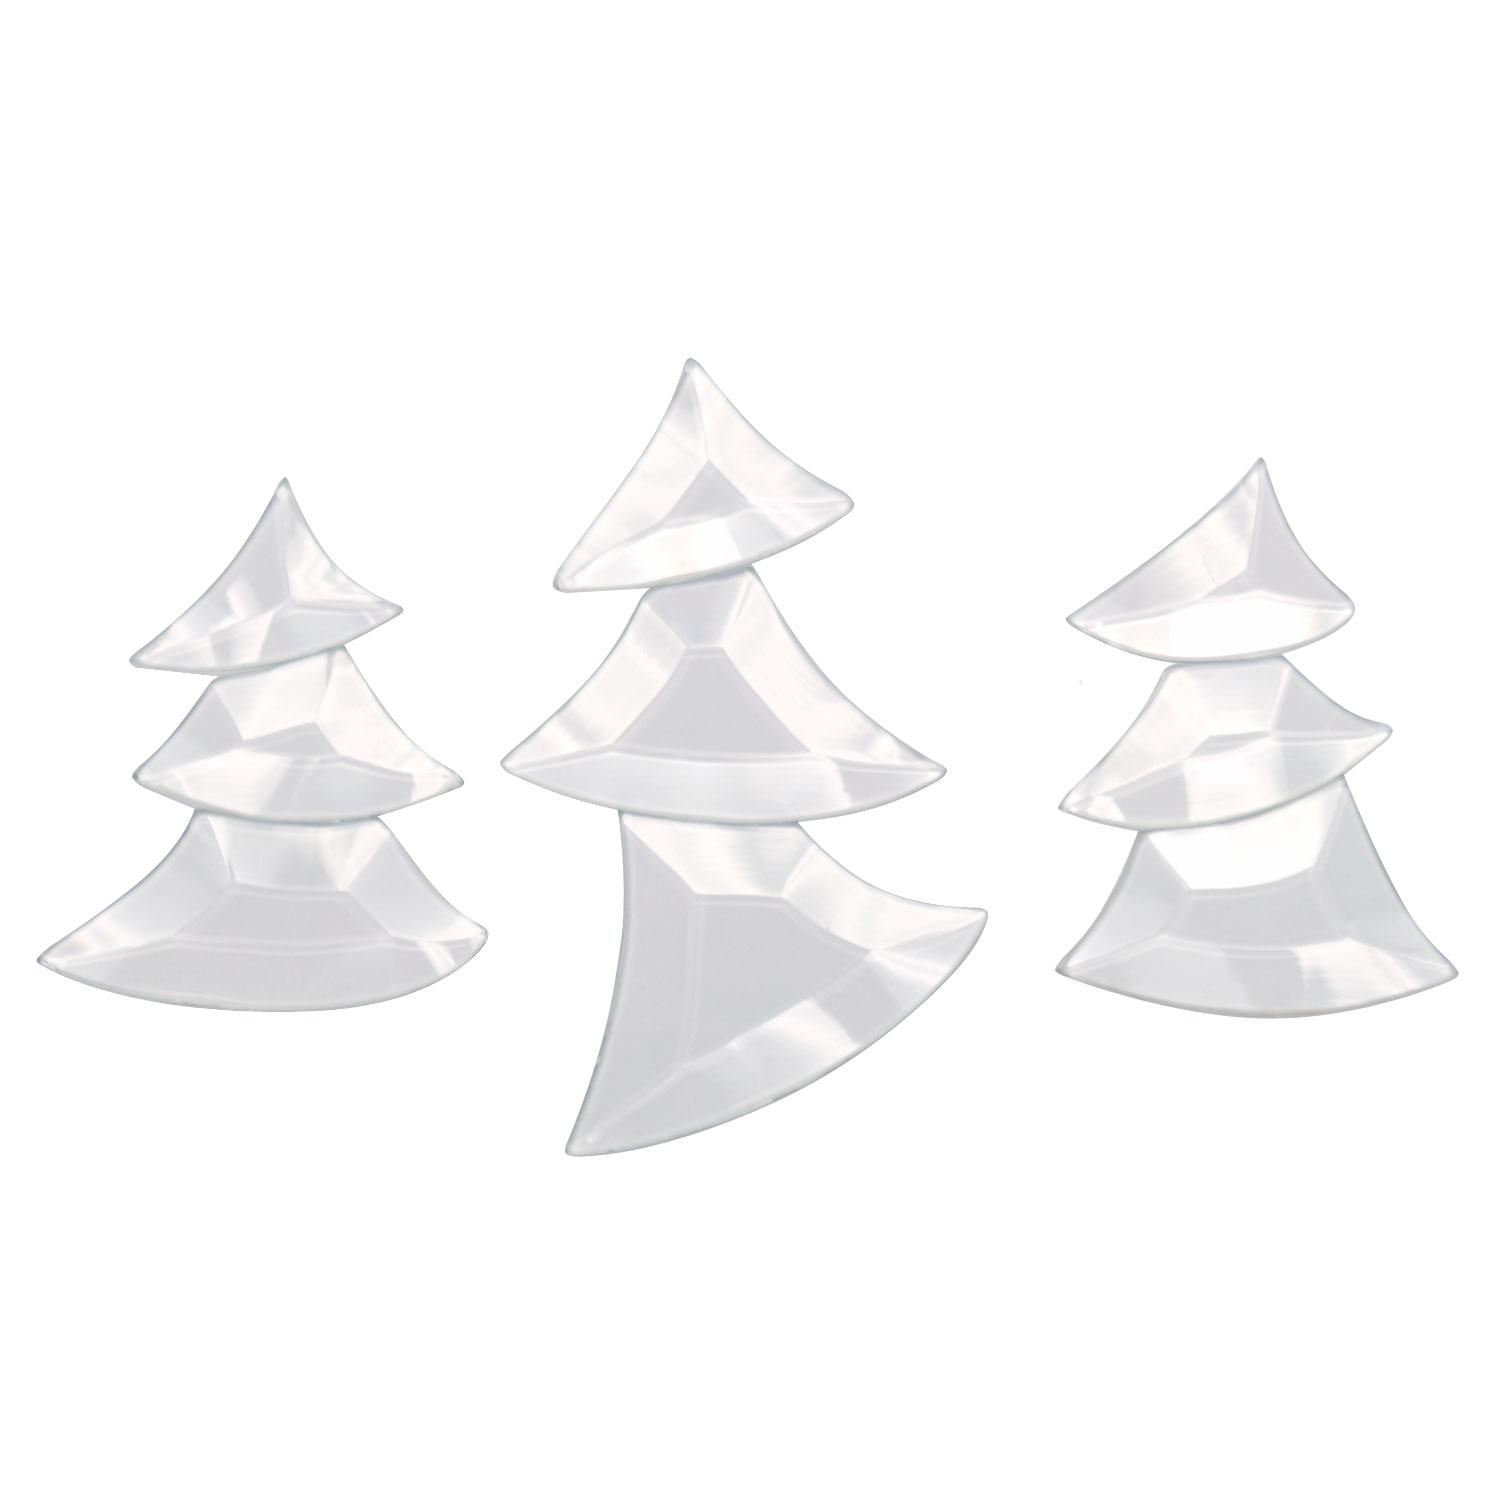 Dancing Christmas Trees Bevel Clusters | Religious Holiday Delphi Glass